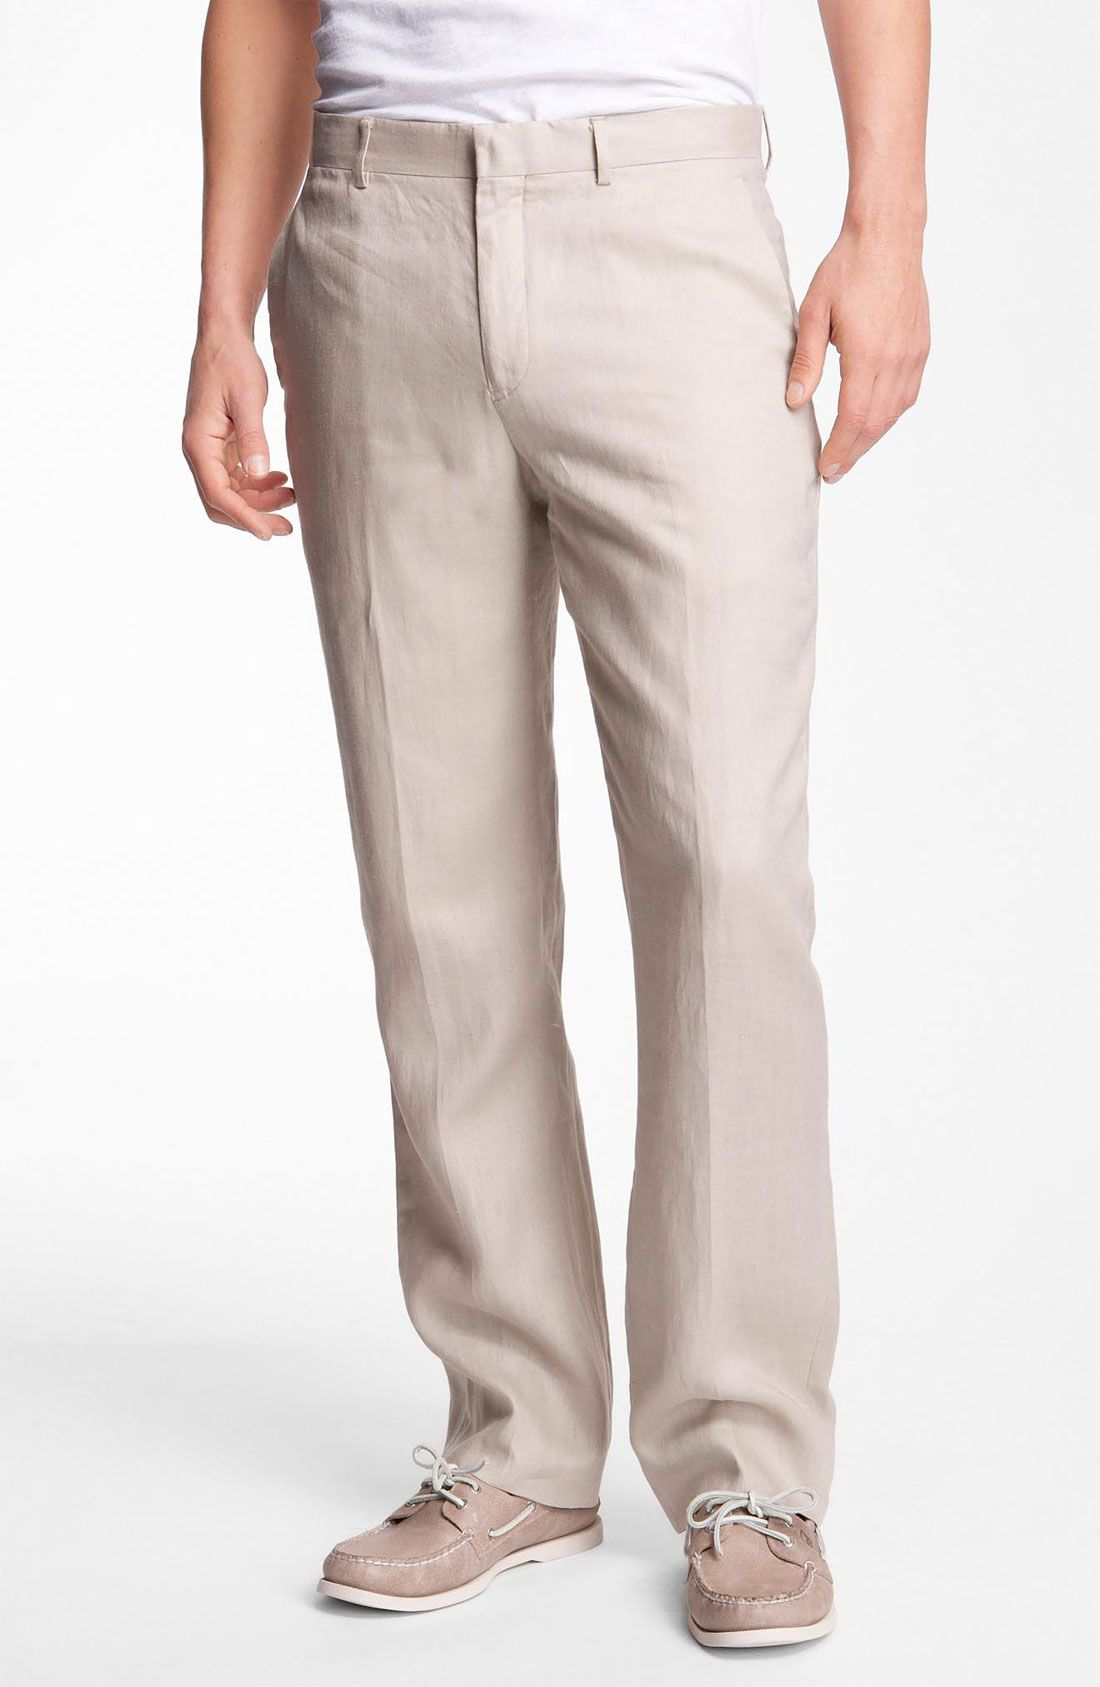 beige linen mens pants | Michael Kors Classic Linen Pants in Beige for Men (sand) | Lyst